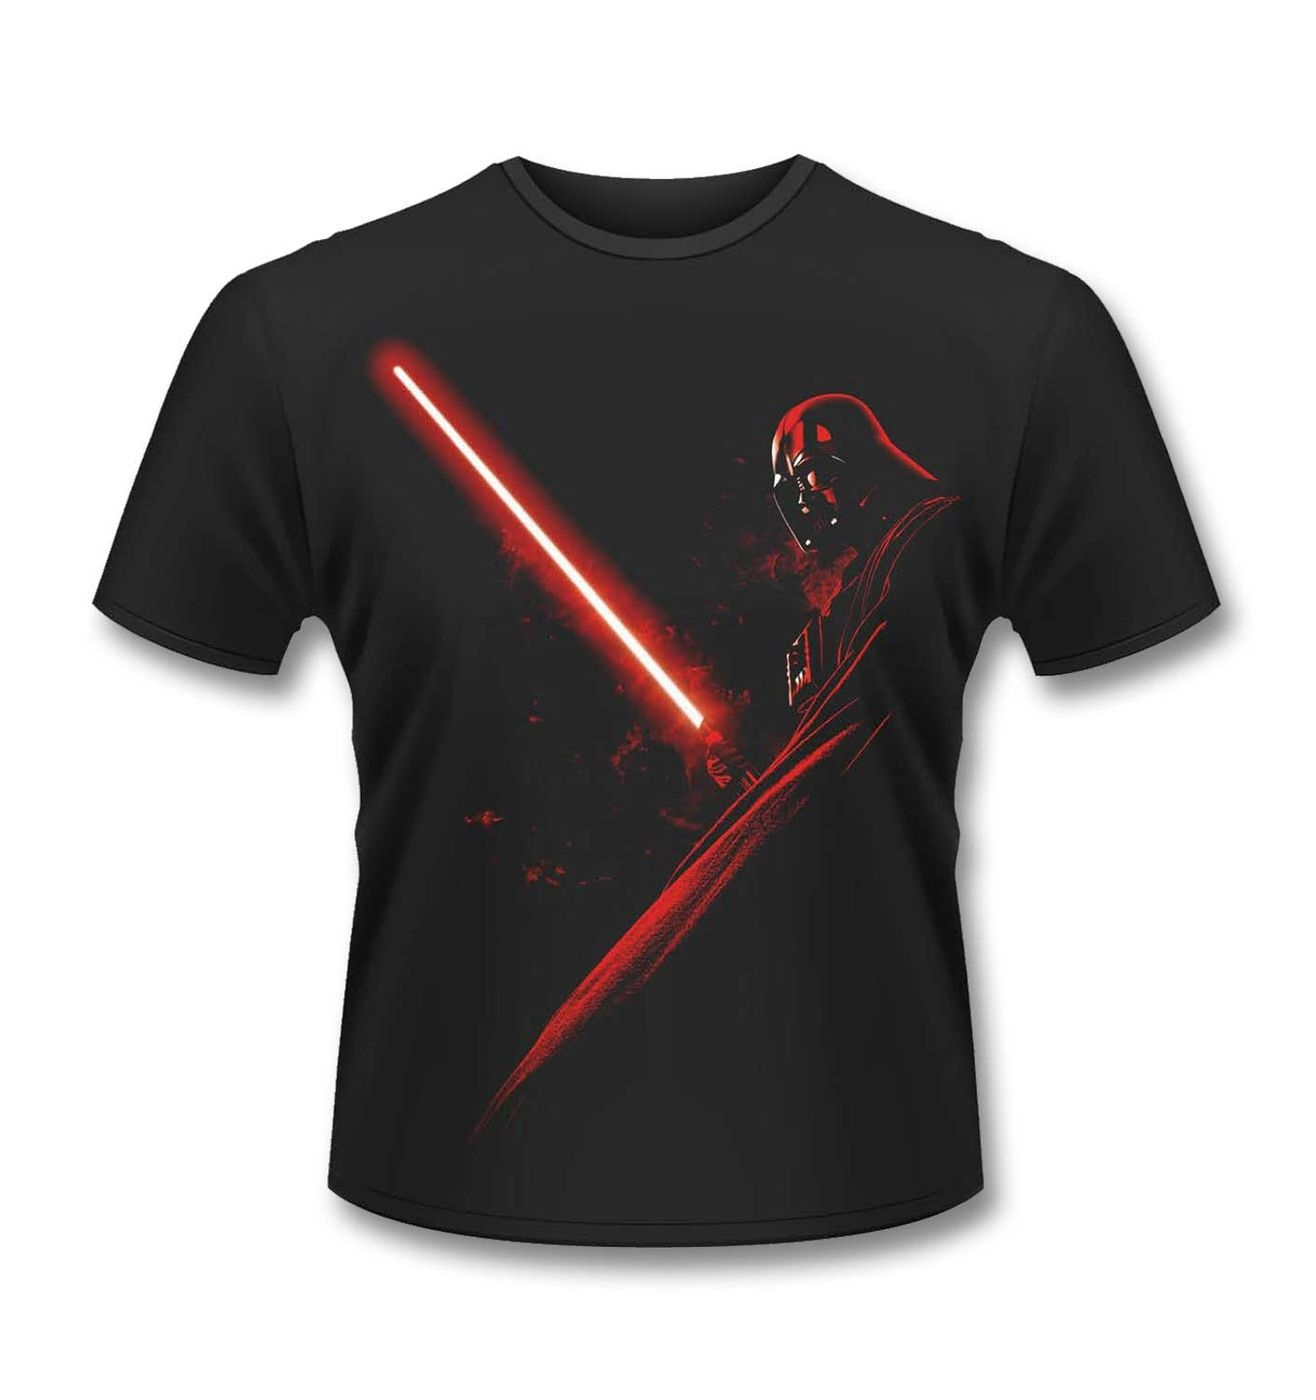 Make a bold statement with our Darth Vader T-Shirts, or choose from our wide variety of expressive graphic tees for any season, interest or occasion. Whether you want a sarcastic t-shirt or a geeky t-shirt to embrace your inner nerd, CafePress has the tee you're looking for. If you'd rather wear.